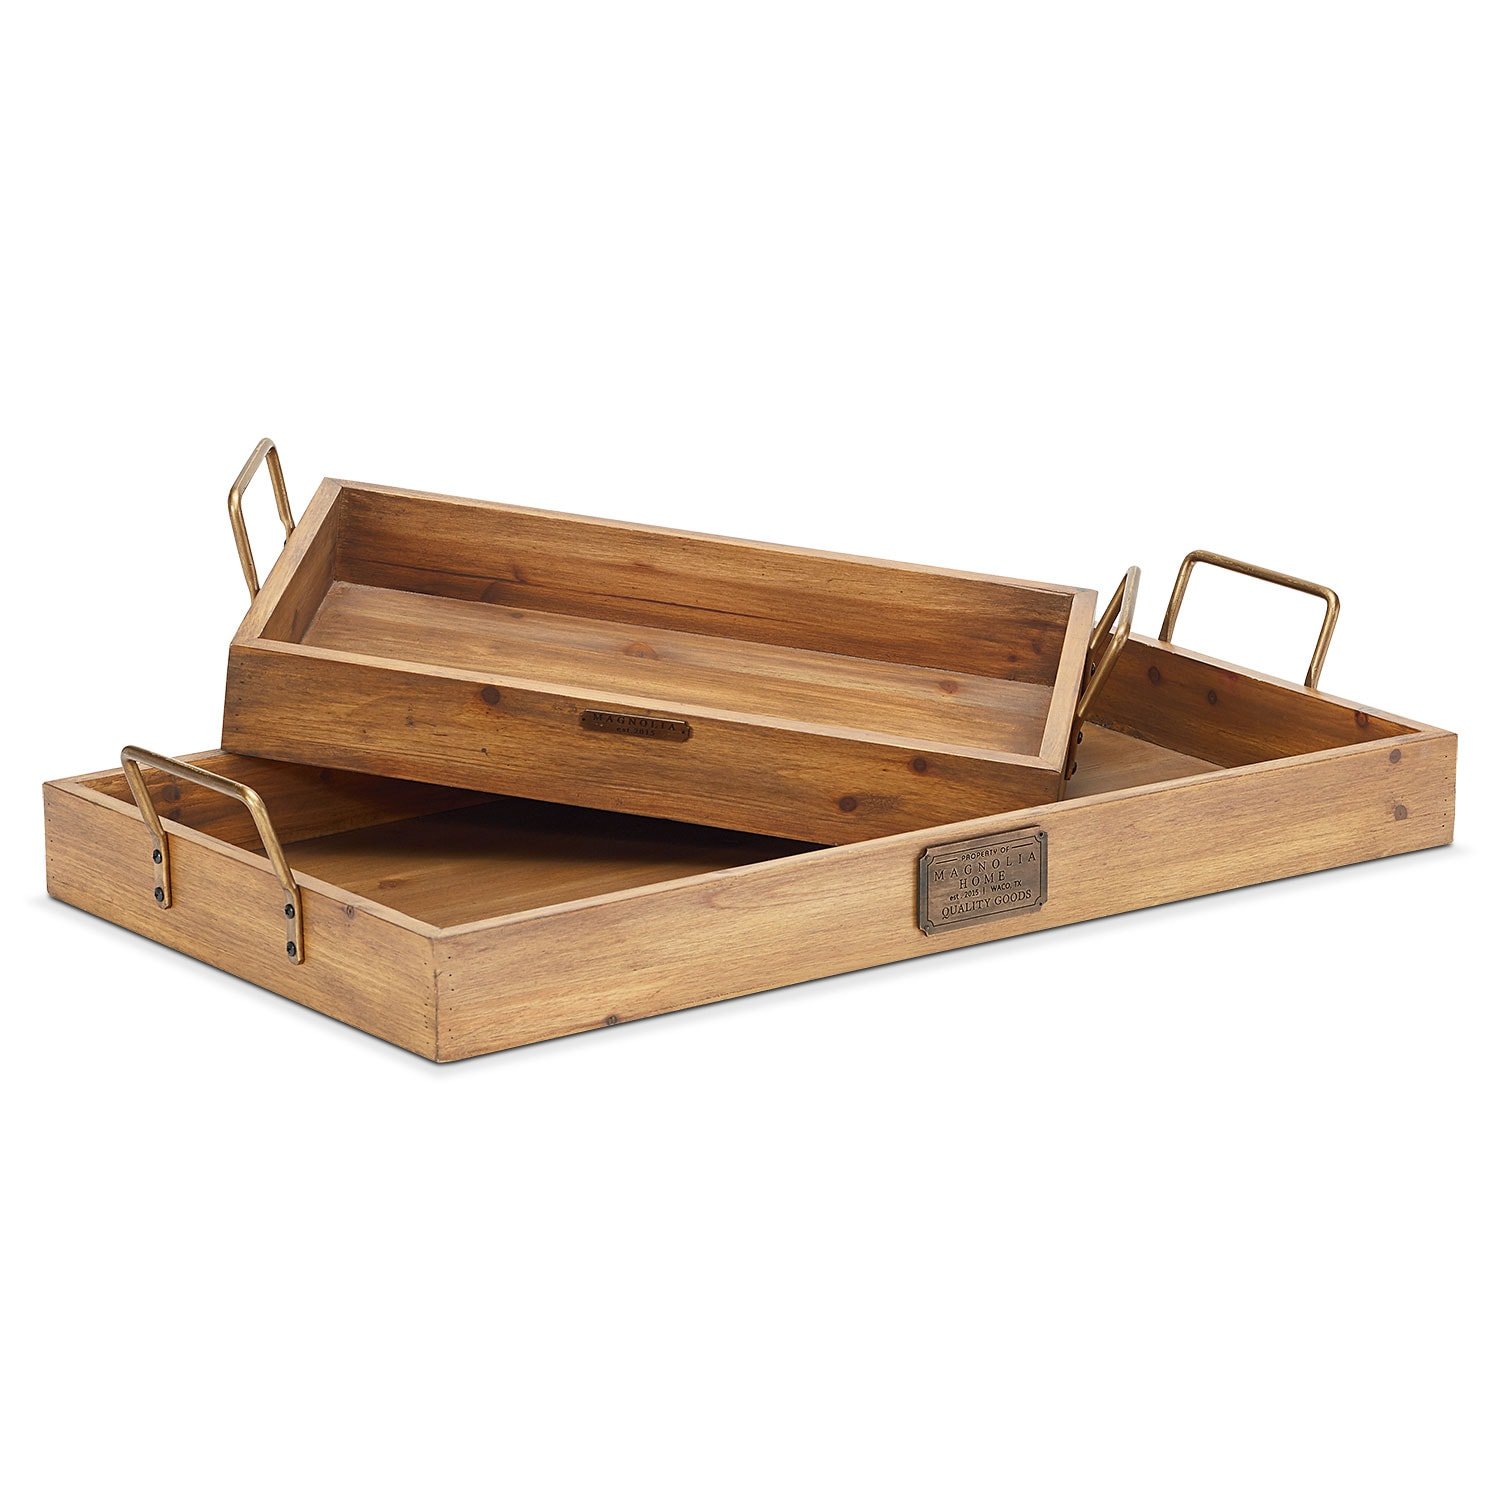 Home Accessories - Breakfast Tray Set - Copper Handles